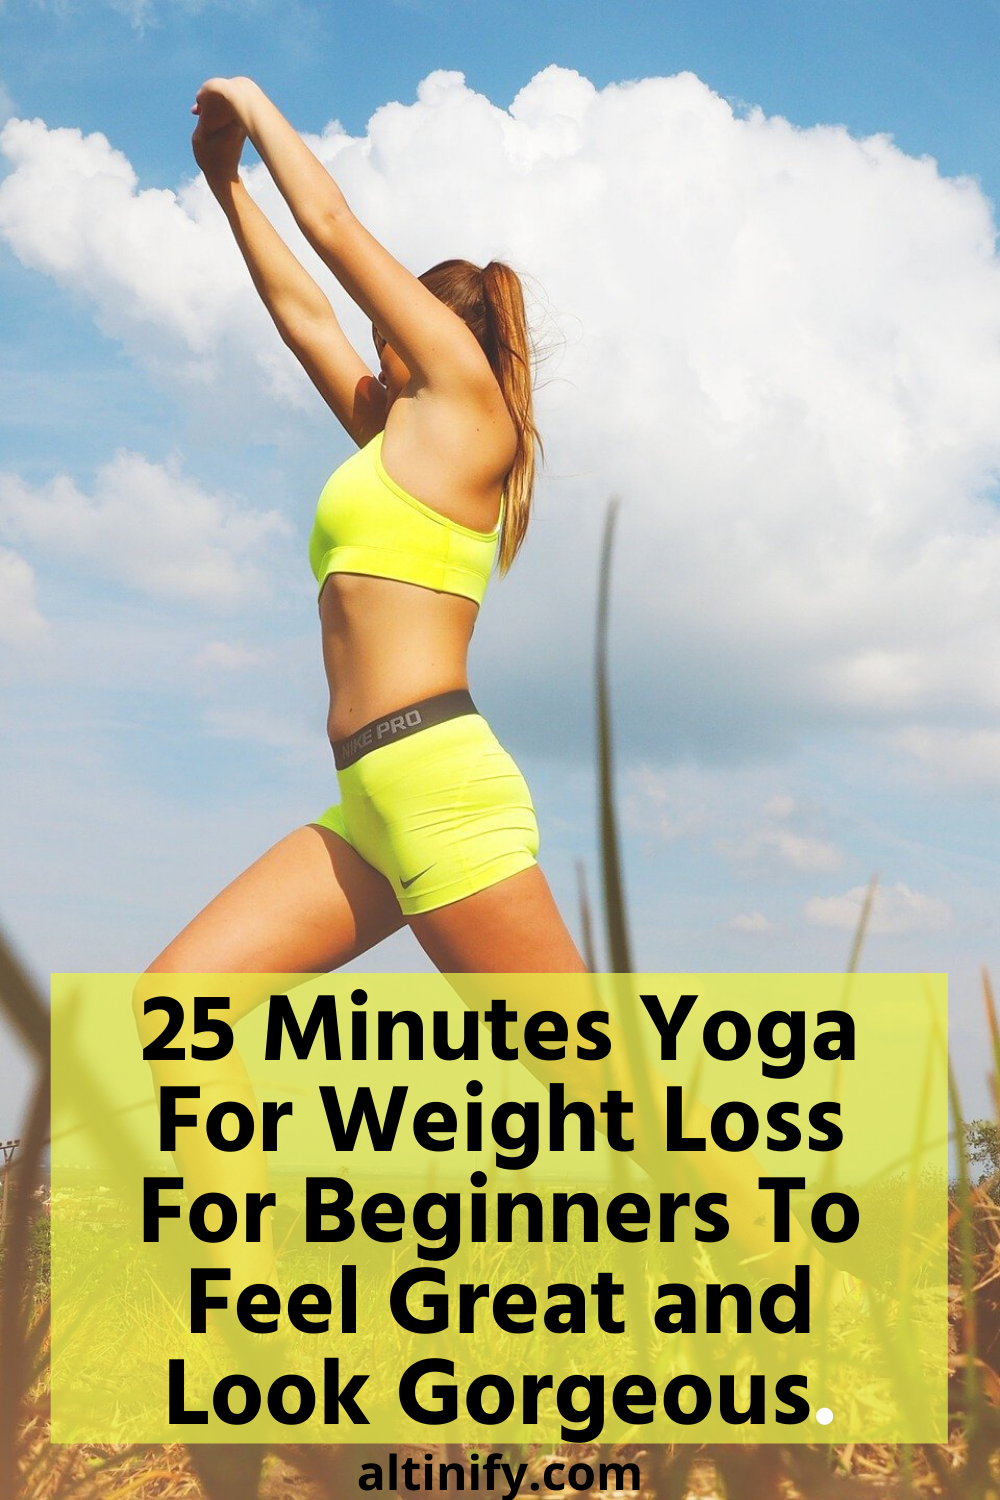 25 Minutes Yoga For Weight Loss For Beginners [With Videos]